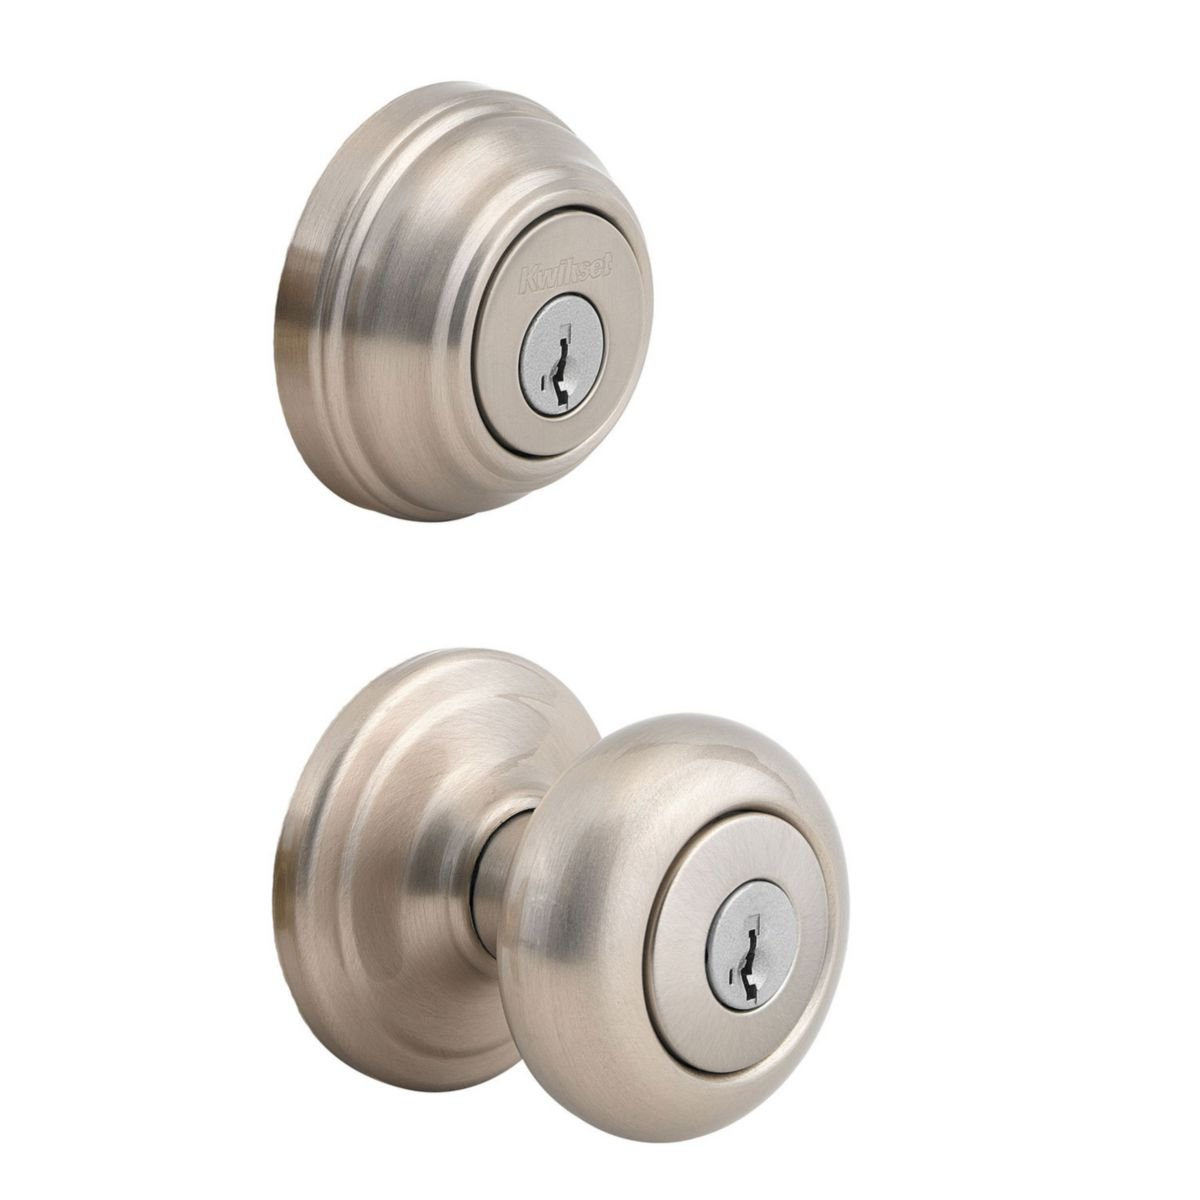 Kwikset 991 Juno Entry Knob and Single Cylinder Deadbolt Combo Pack featuring SmartKey in Satin Nickel by Kwikset (Image #1)